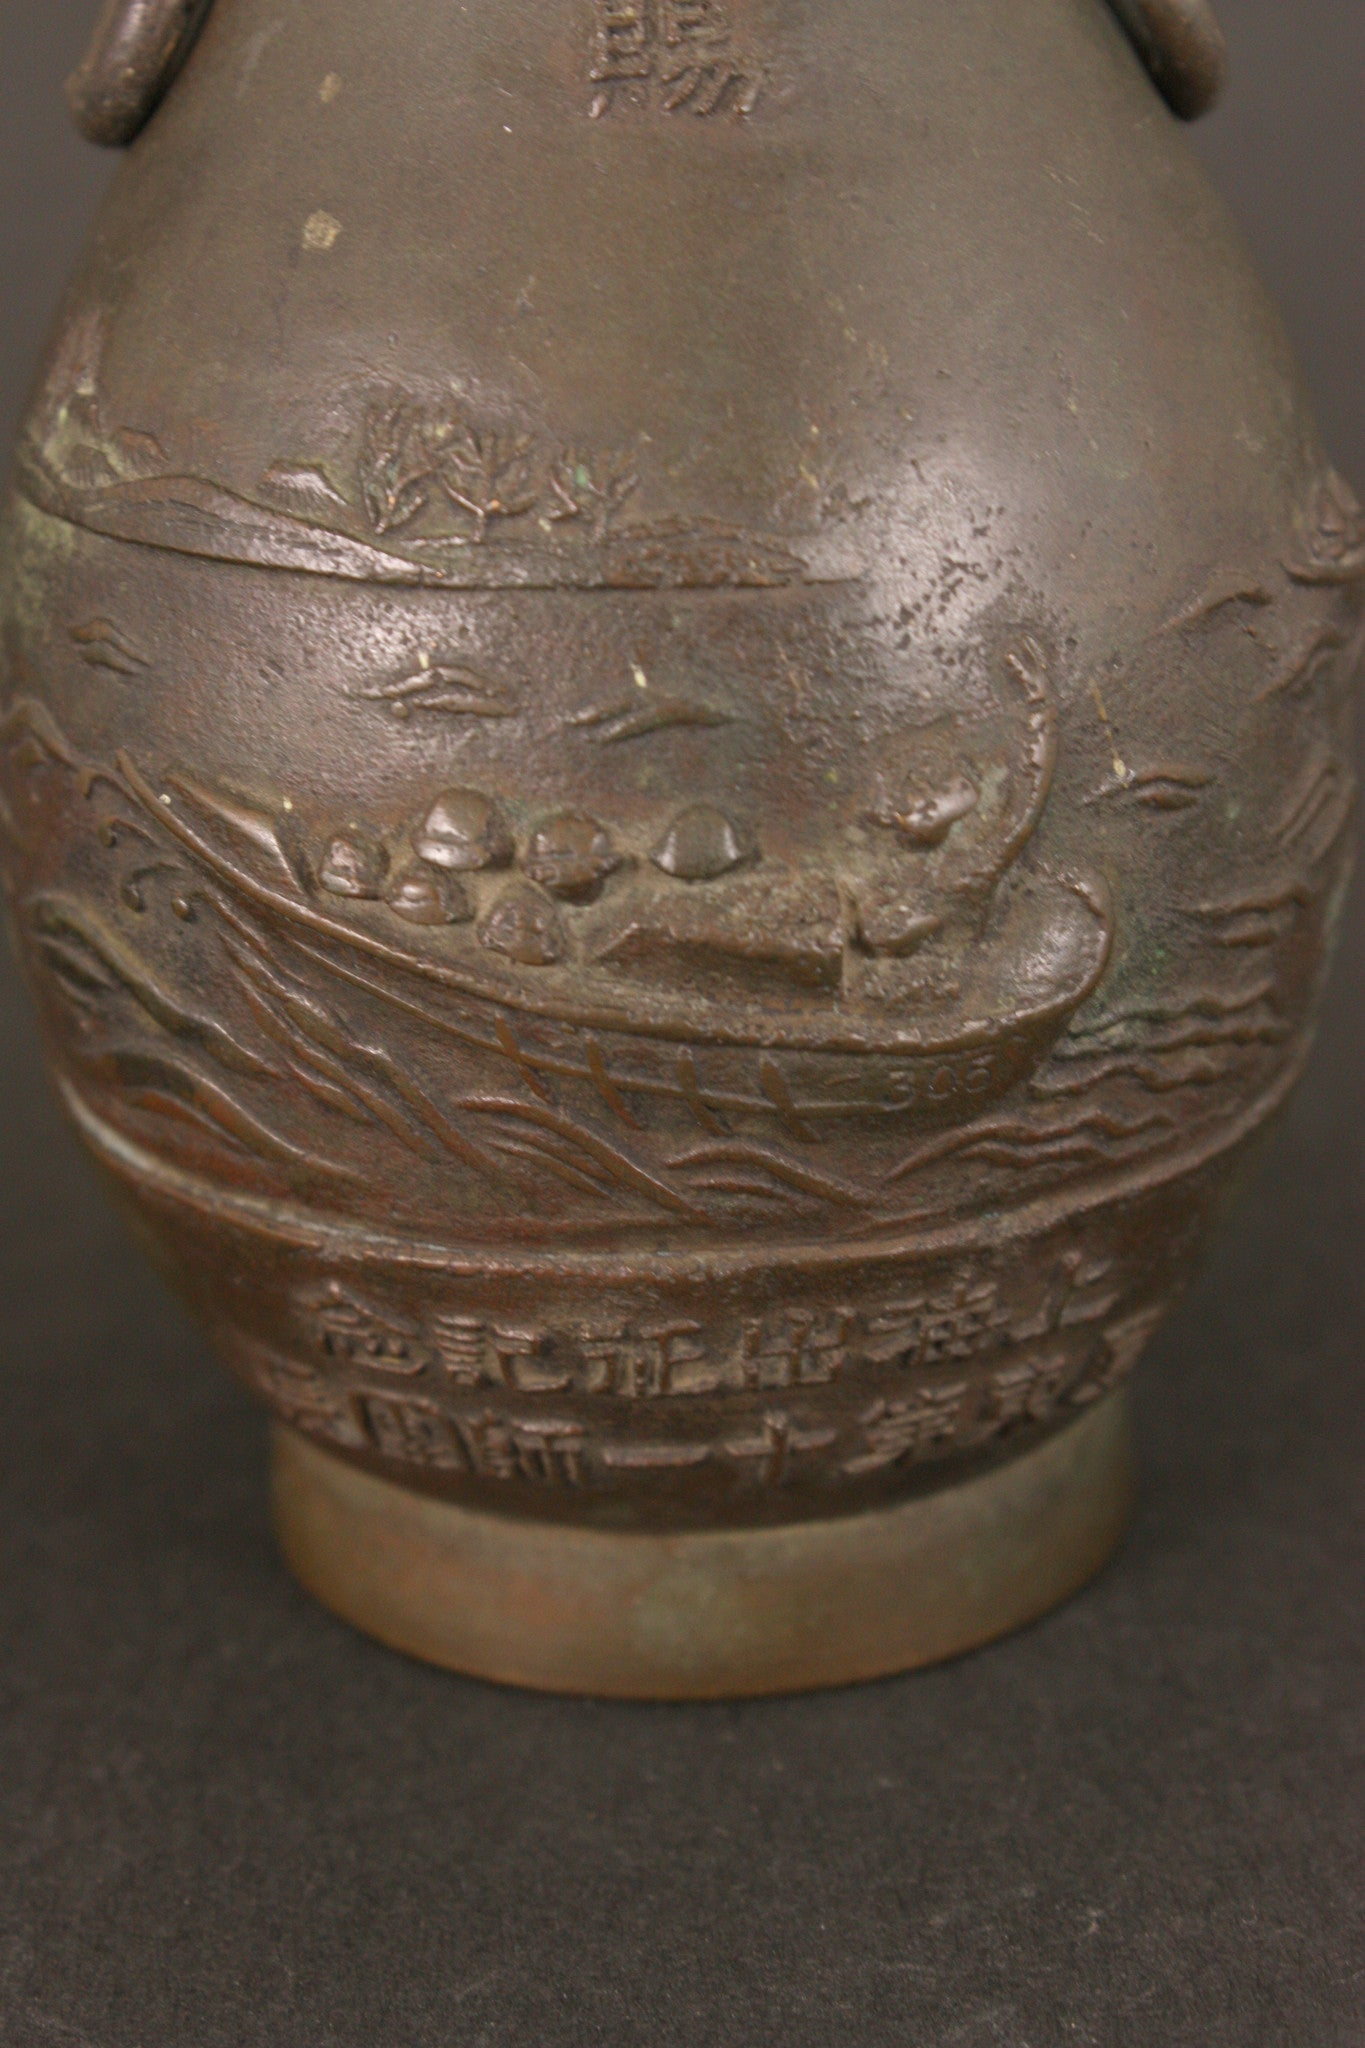 Antique Japanese Military 1931 Shanghai Incident Imperially Bestowed to Army Lieutenant General Bottle